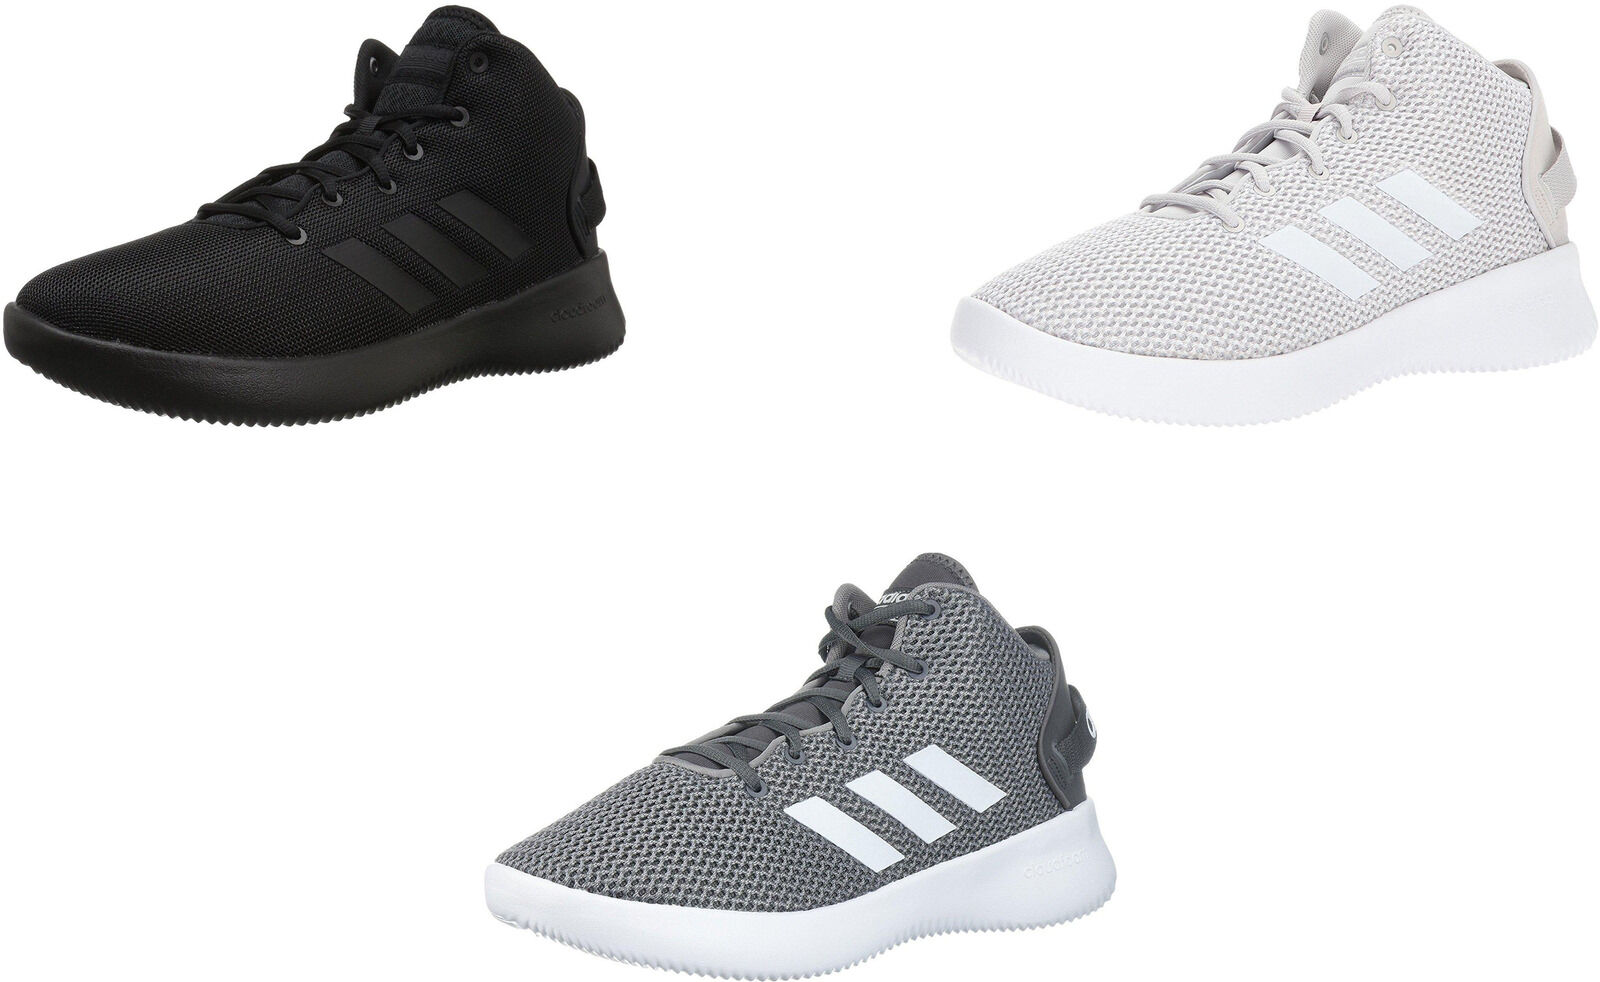 54183e558d5 adidas Neo Men s CloudFoam Refresh Mid Basketball Shoes